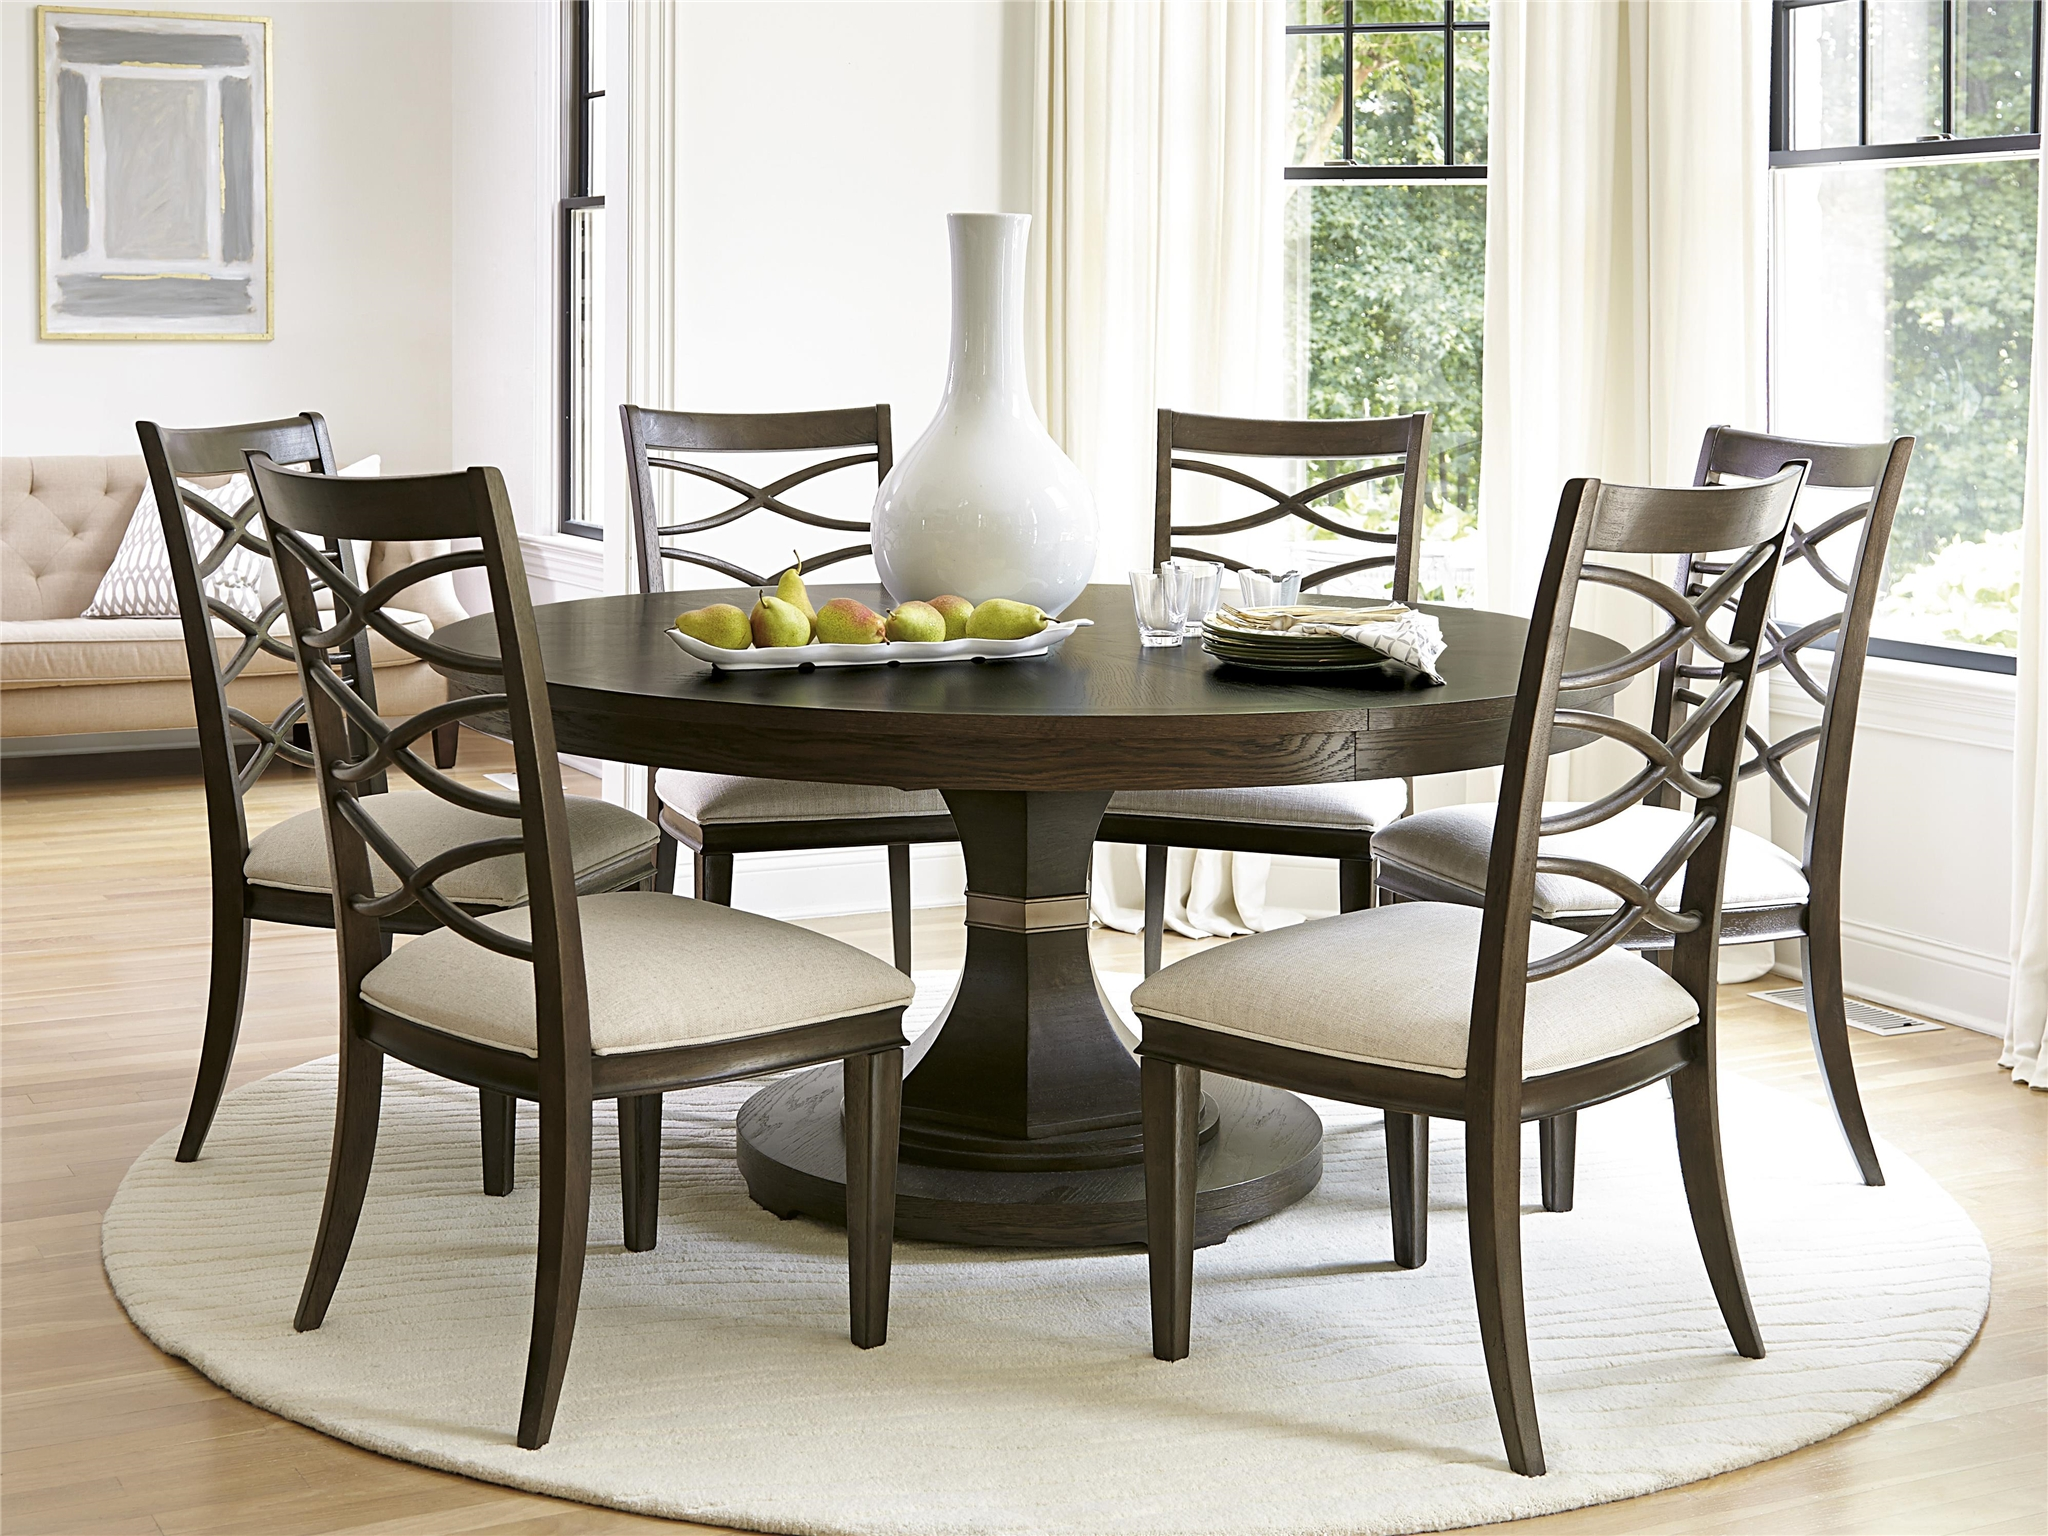 Brilliant Ideas Of Round Dining Room Table With Grady Round Dining Throughout 2017 Grady 5 Piece Round Dining Sets (Image 3 of 20)